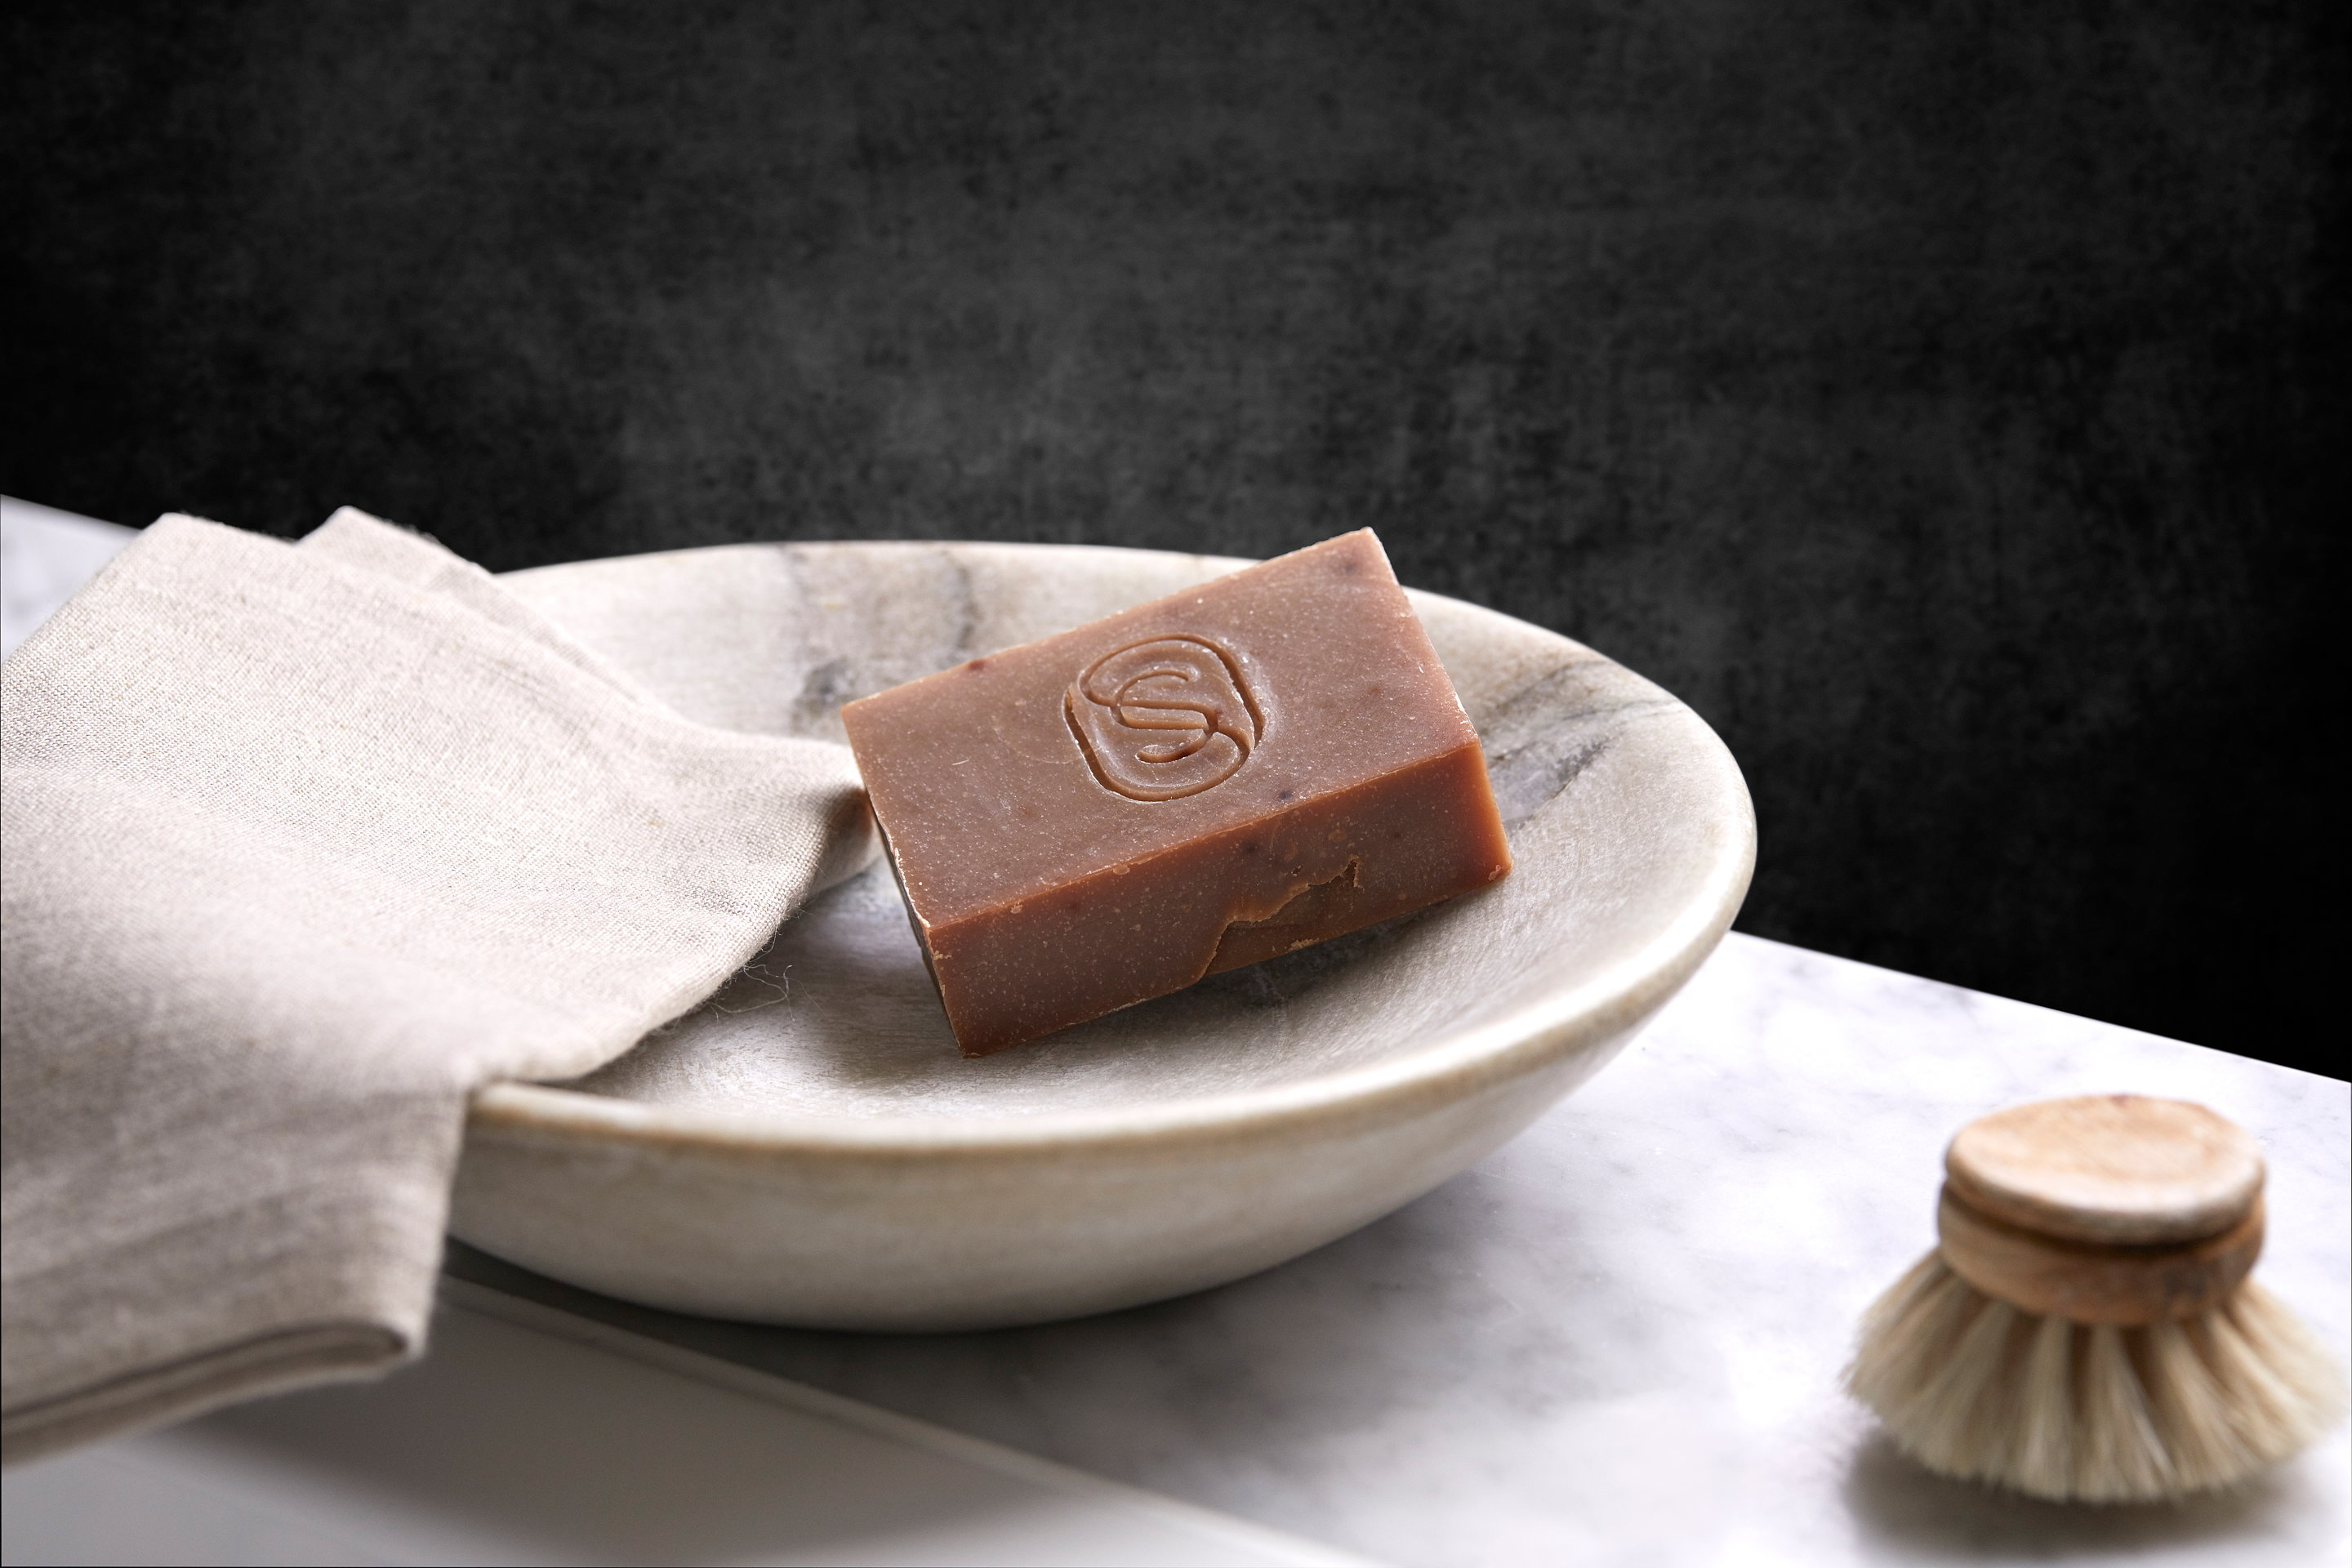 """Soapsmith """"class ="""" aimg lazyload """"/> </source> </picture> </figure> <p id="""